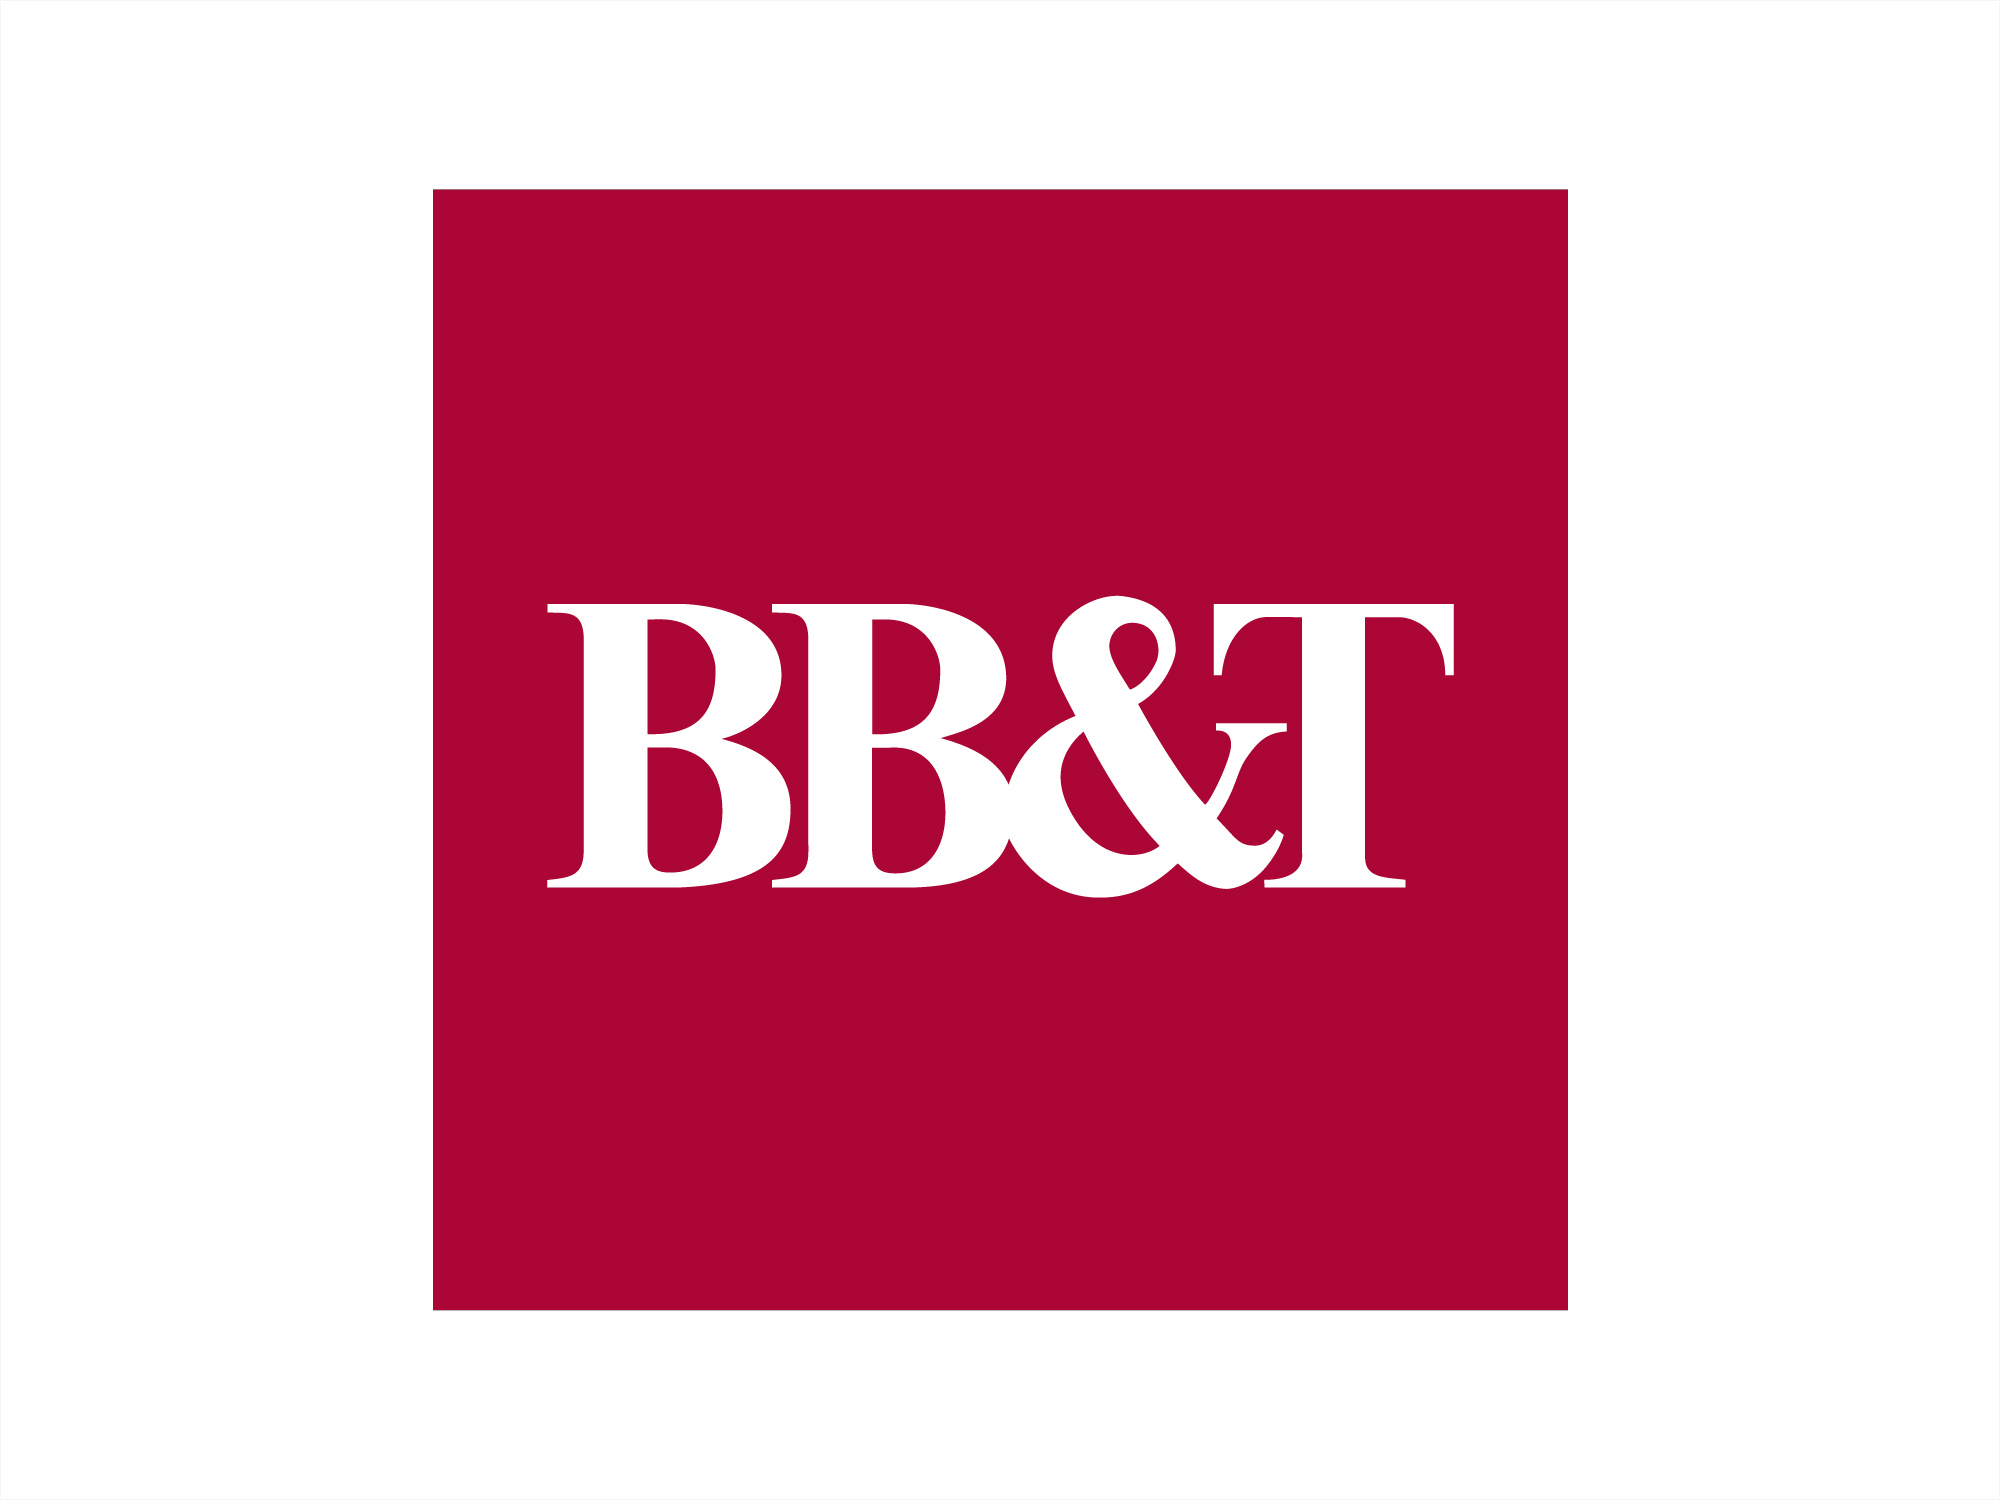 BB&T reports services are returning